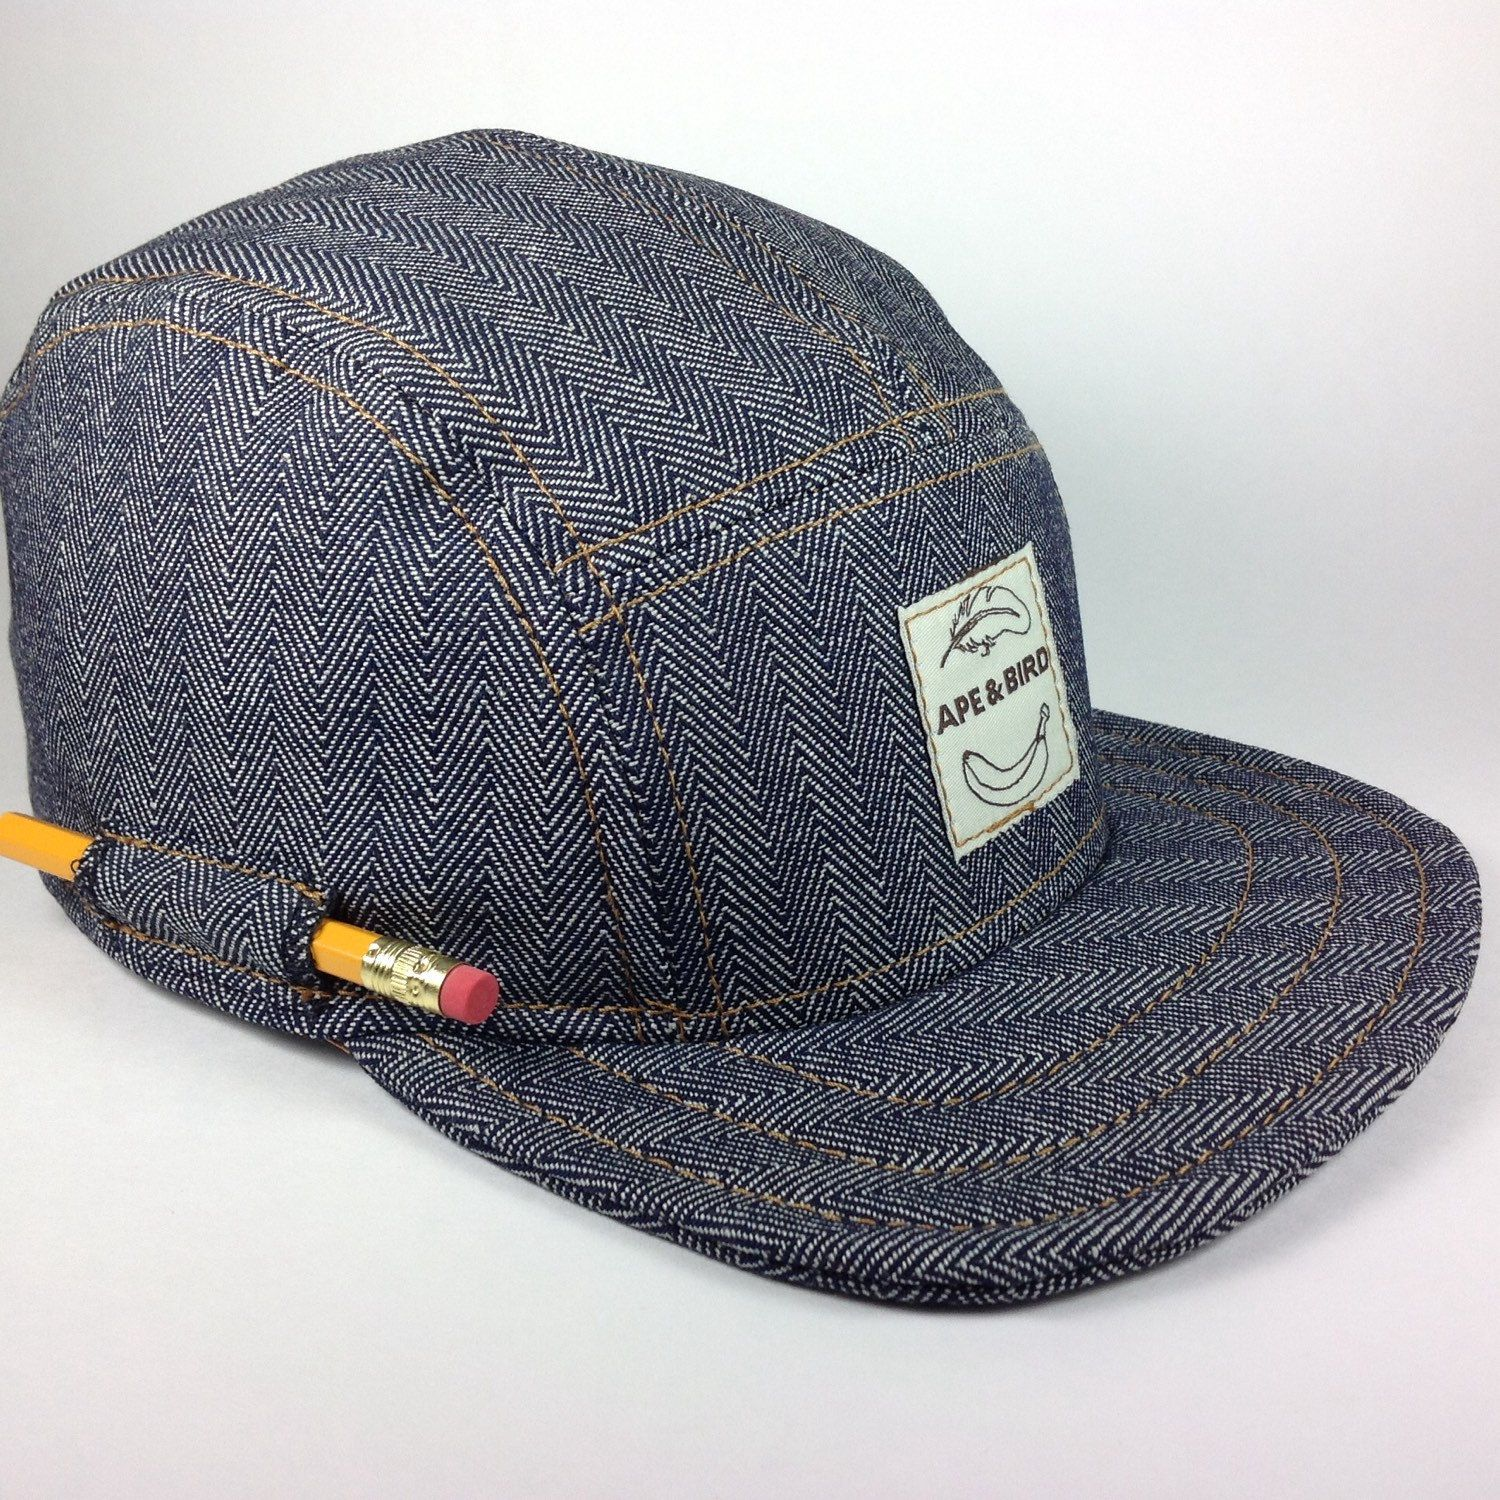 4e6183df3a2 Handmade 5 panel cap. Indigo Herringbone Denim hat with PENCIL Pocket!  (45.00 USD) by ApeNBird